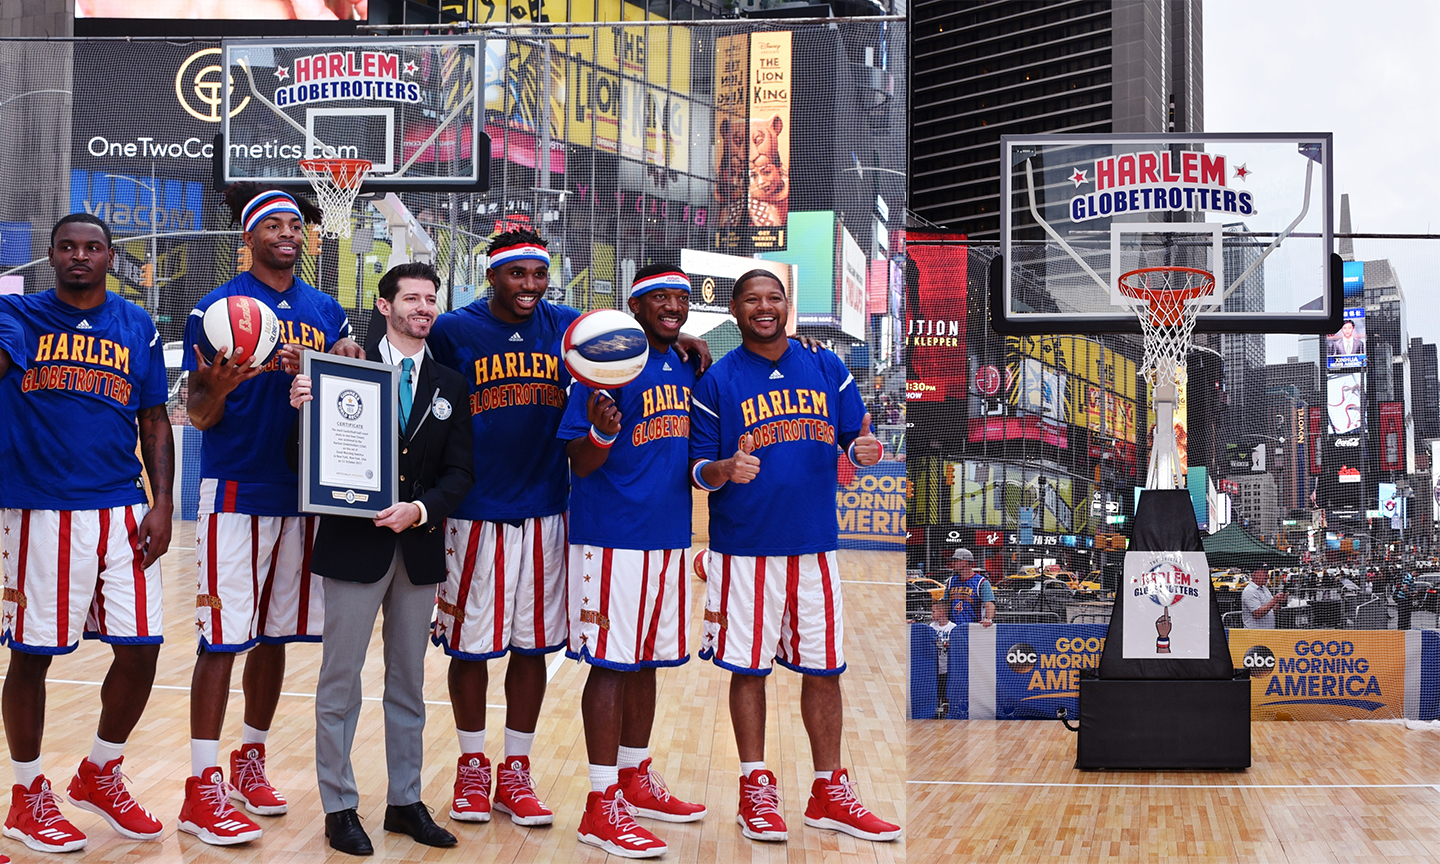 Good Morning America with The Harlem Globetrotters